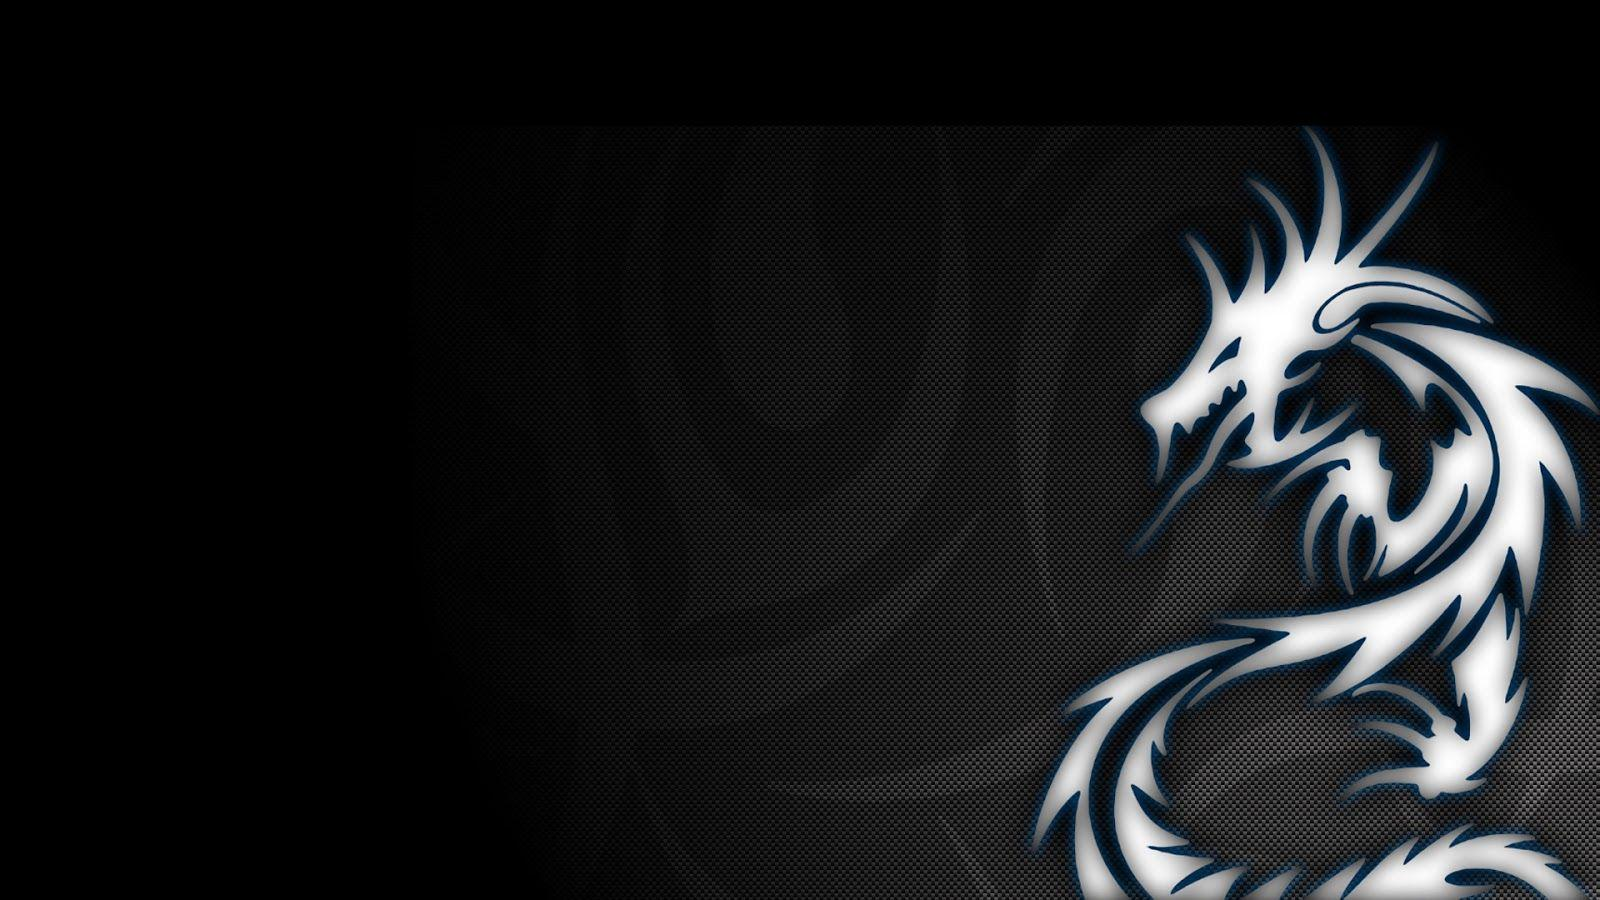 Dragon Icon Hd Wallpapers 1080p